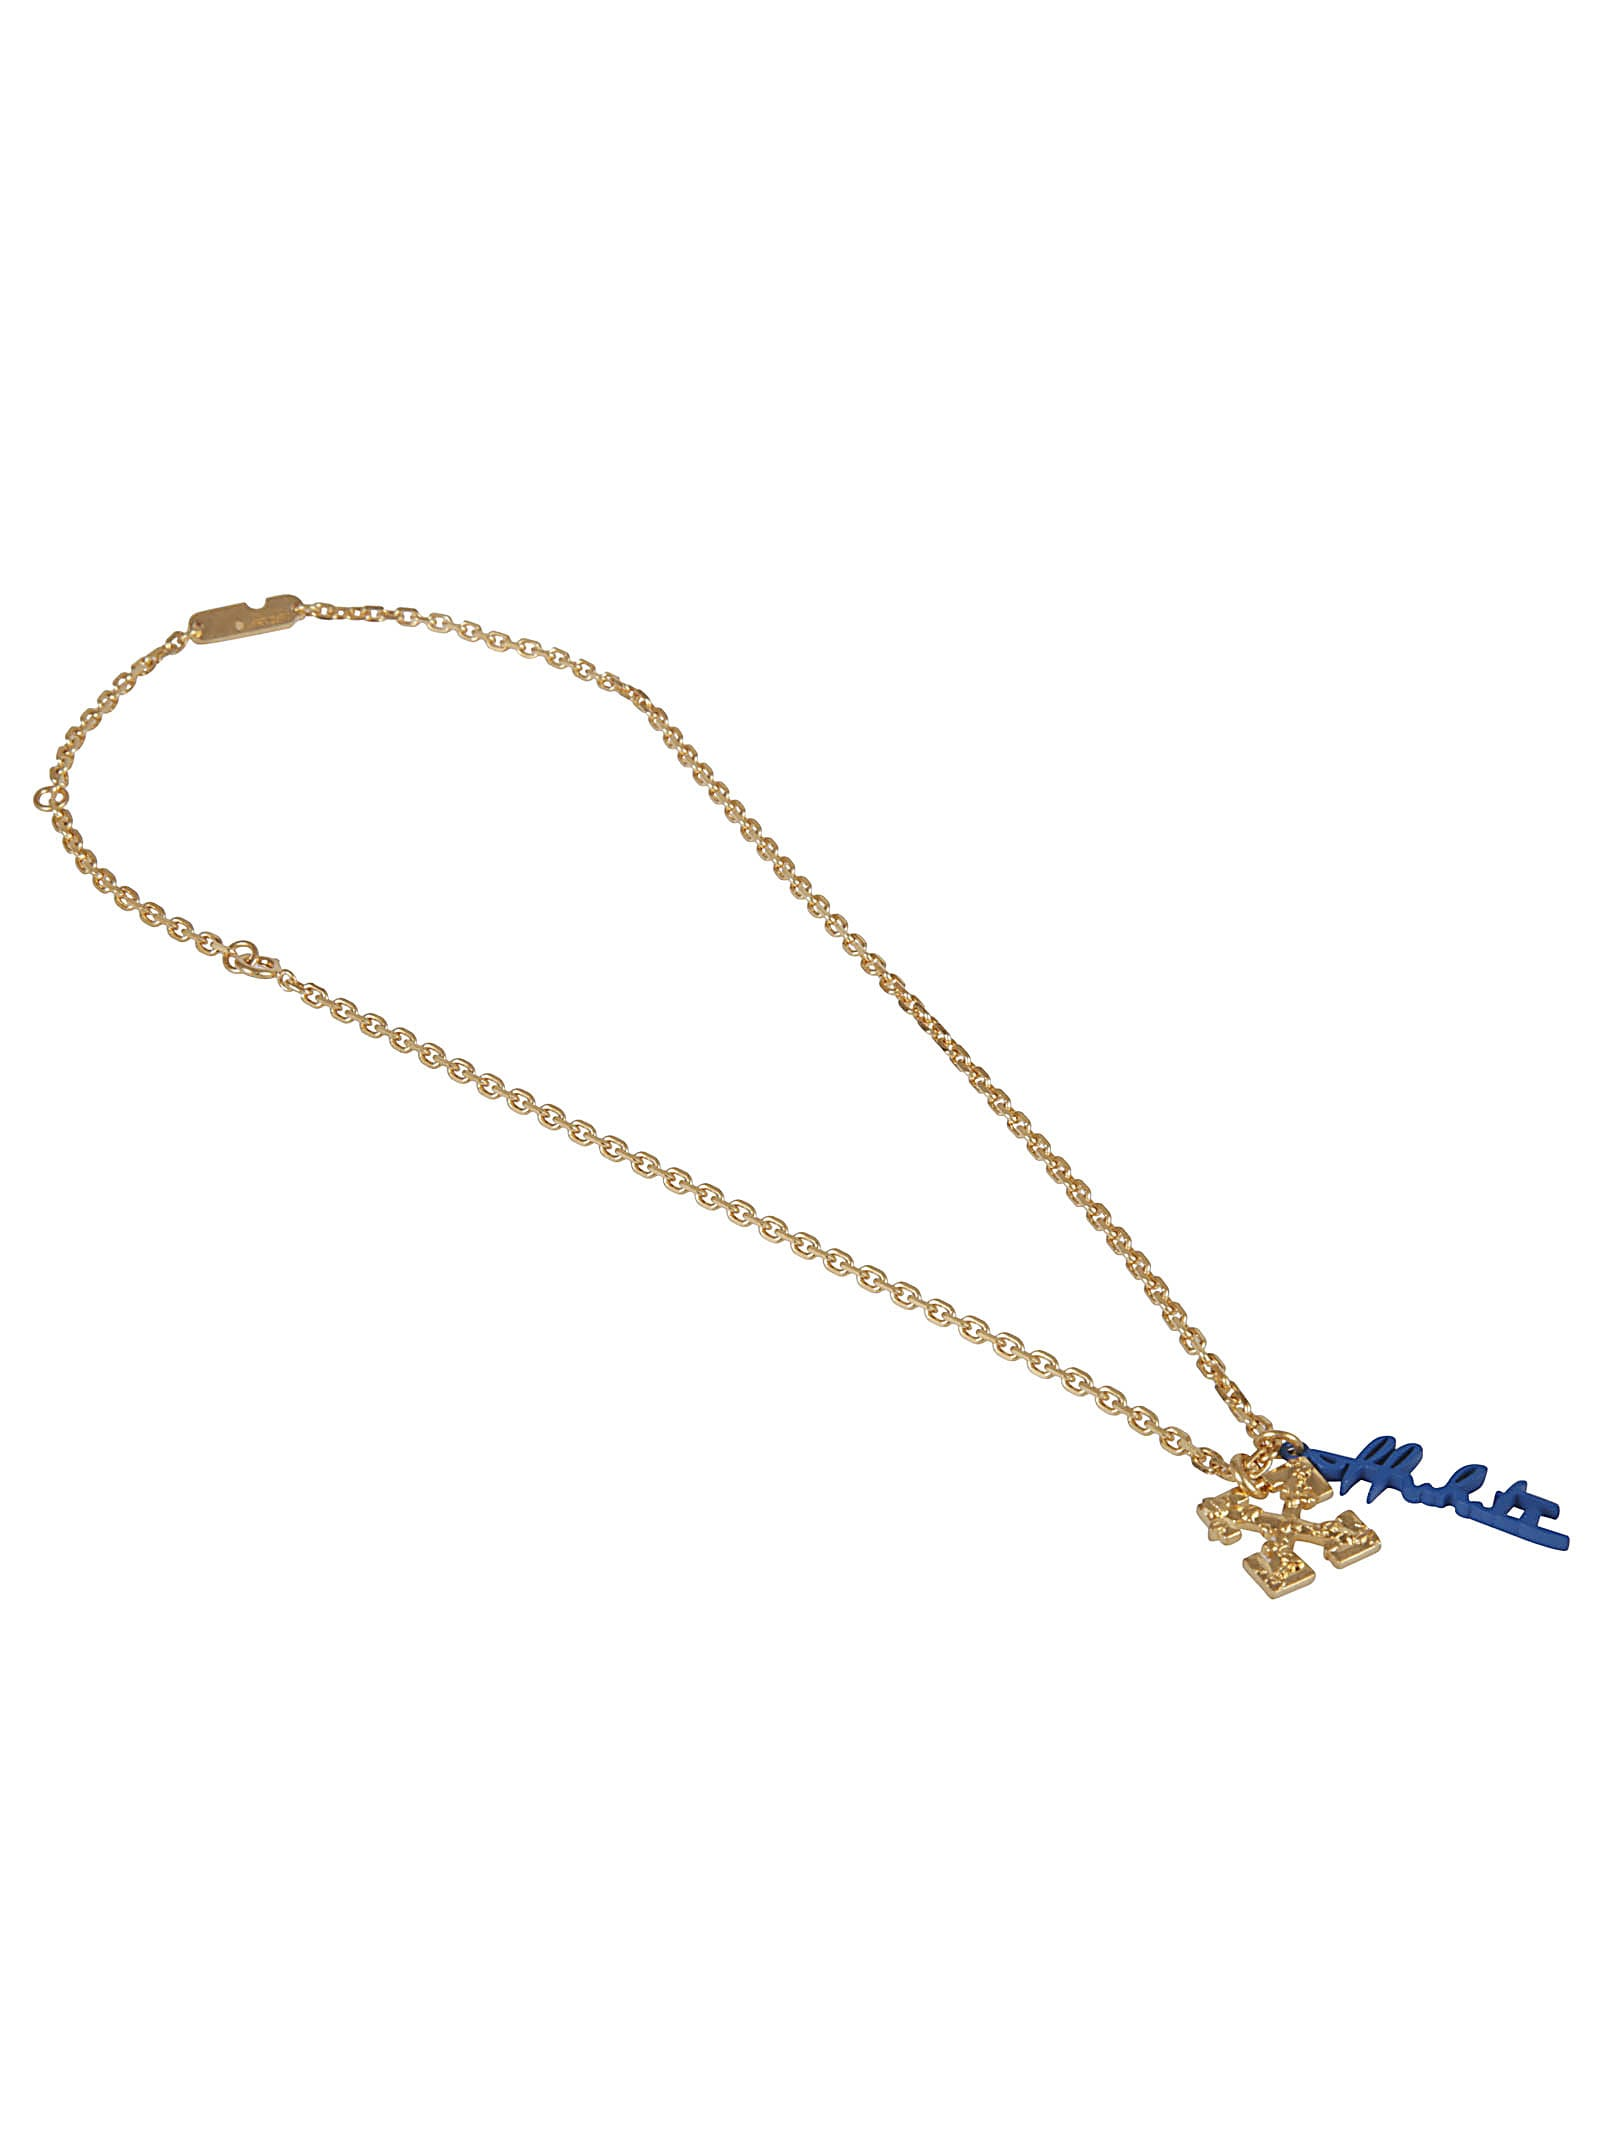 Off-White Leaves Arrow Necklace